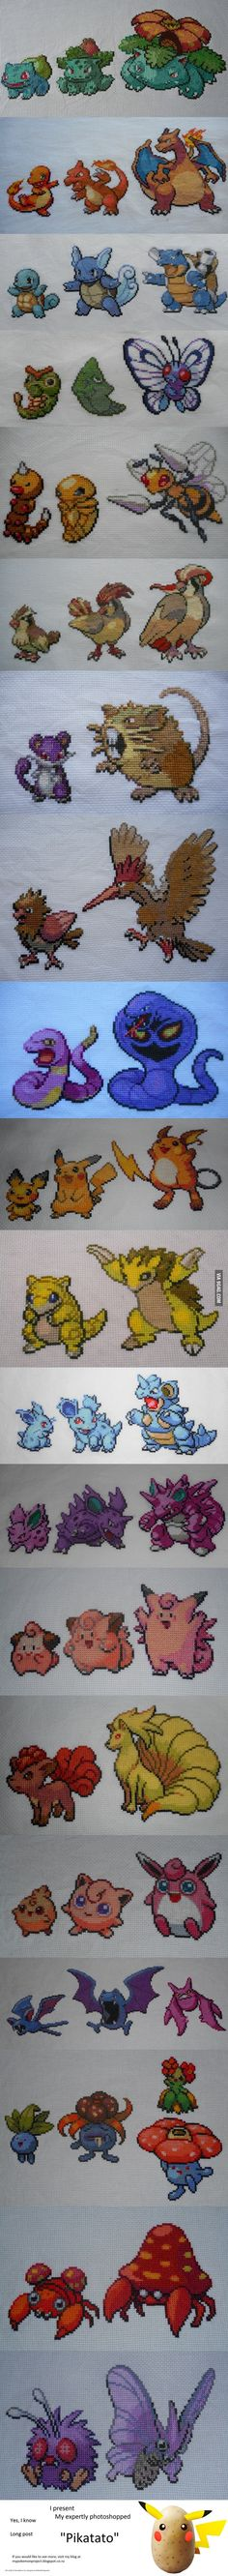 My hobby is cross-stitching Pokemon. Here's what I've done so far